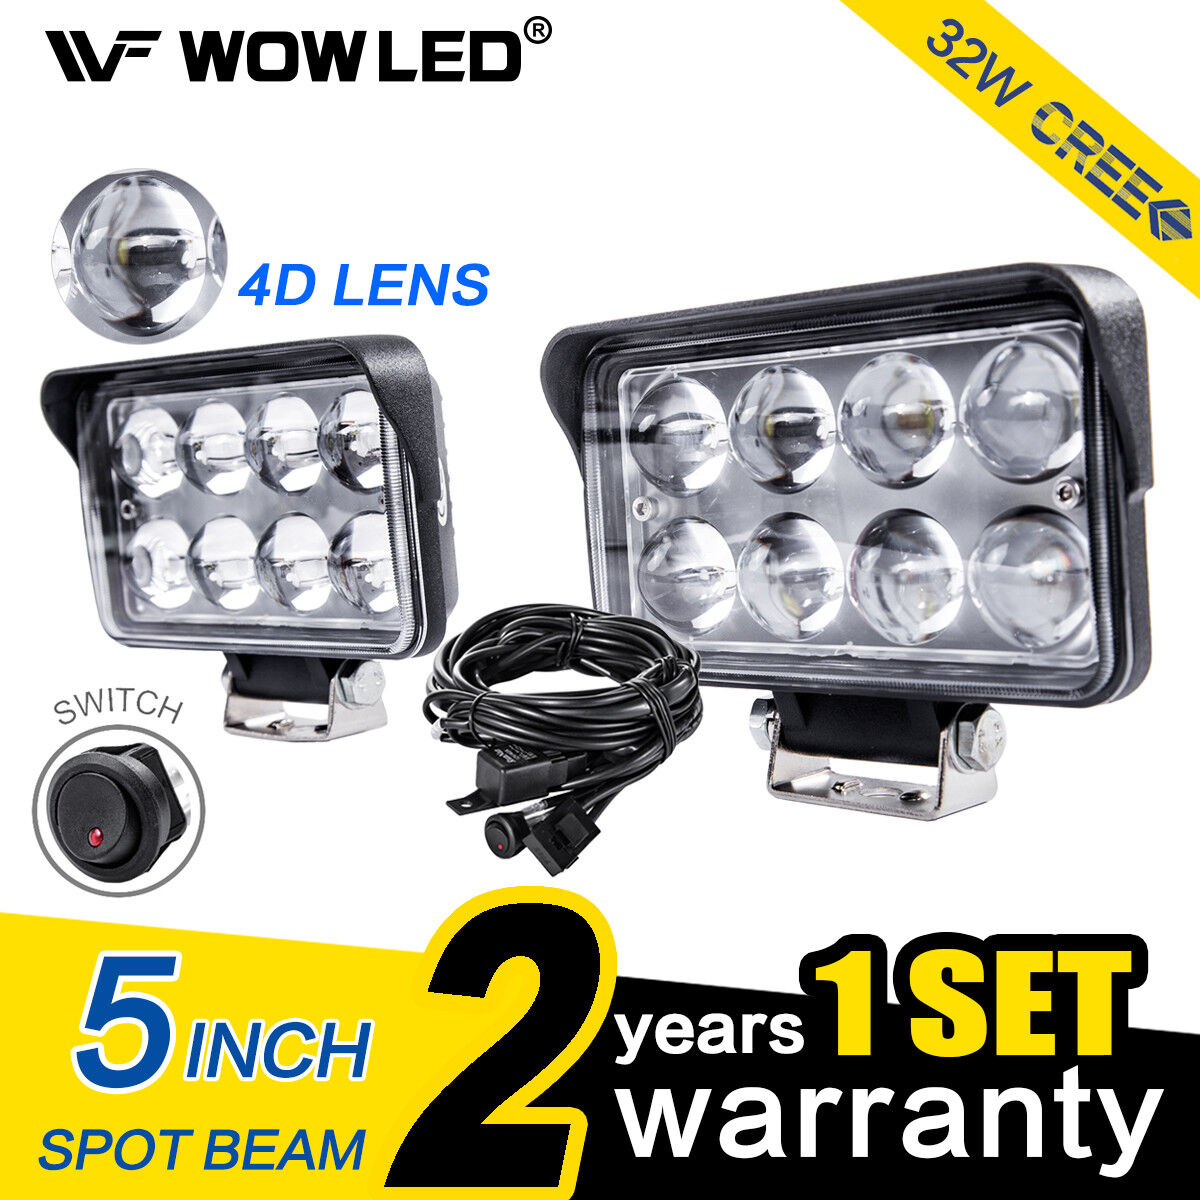 "Wow 5/"" 32 W 8LED Spot 4D Lens Work Light Bar Offroad Truck Lampe 12 V 4X4"